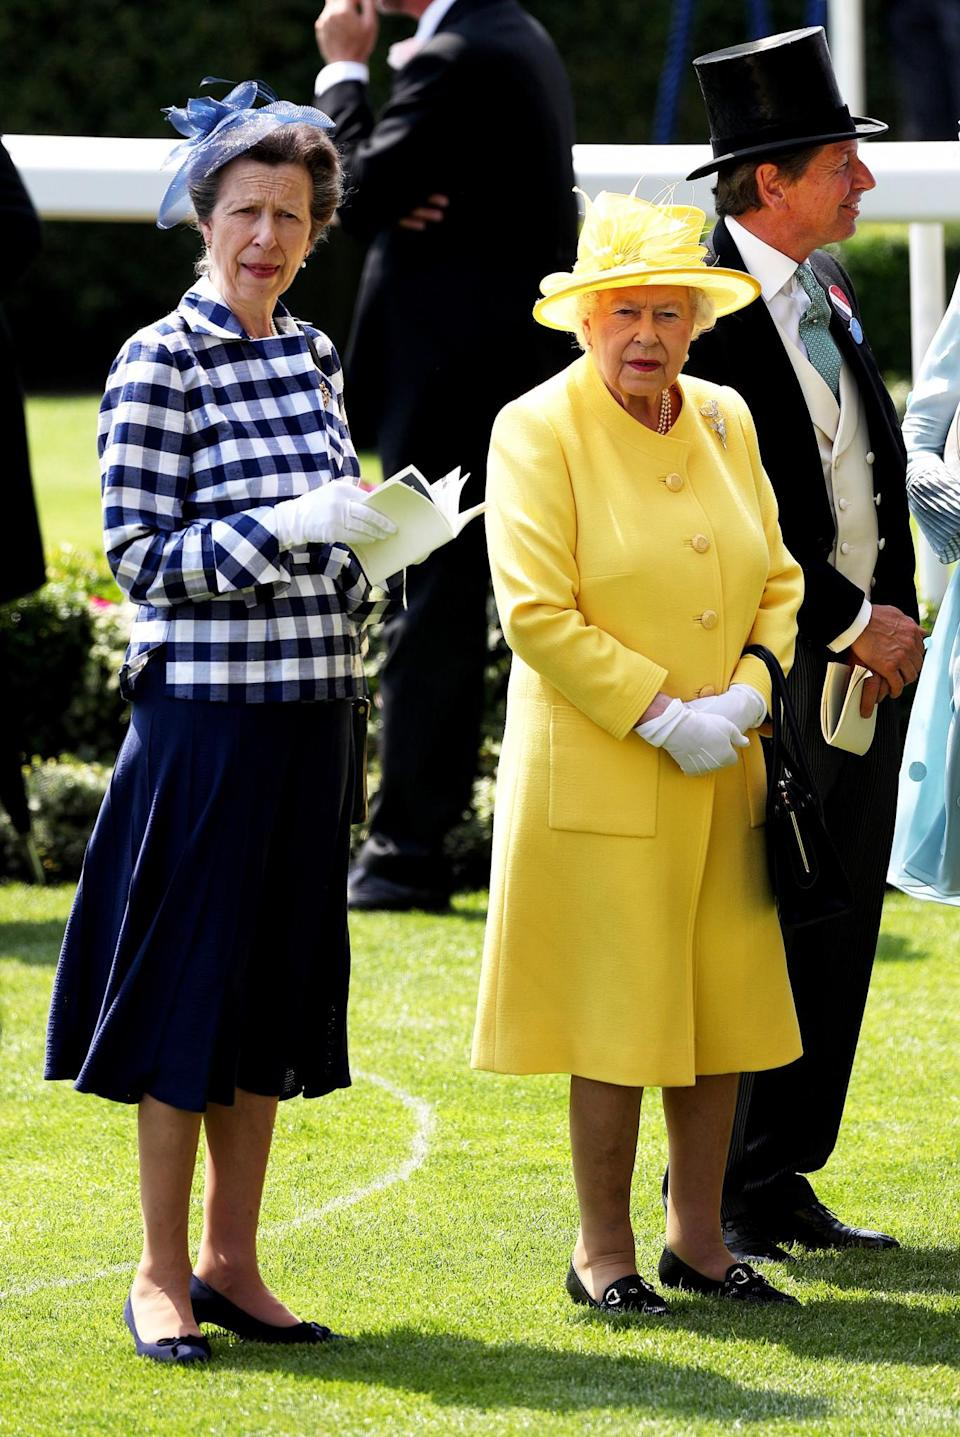 <p>For day two of Royal Ascot, the Queen worked a canary yellow ensemble, while her daughter Princess Anne paired a gingham jacket with white gloves and a navy blue skirt. <br><em>[Photo: Getty]</em> </p>